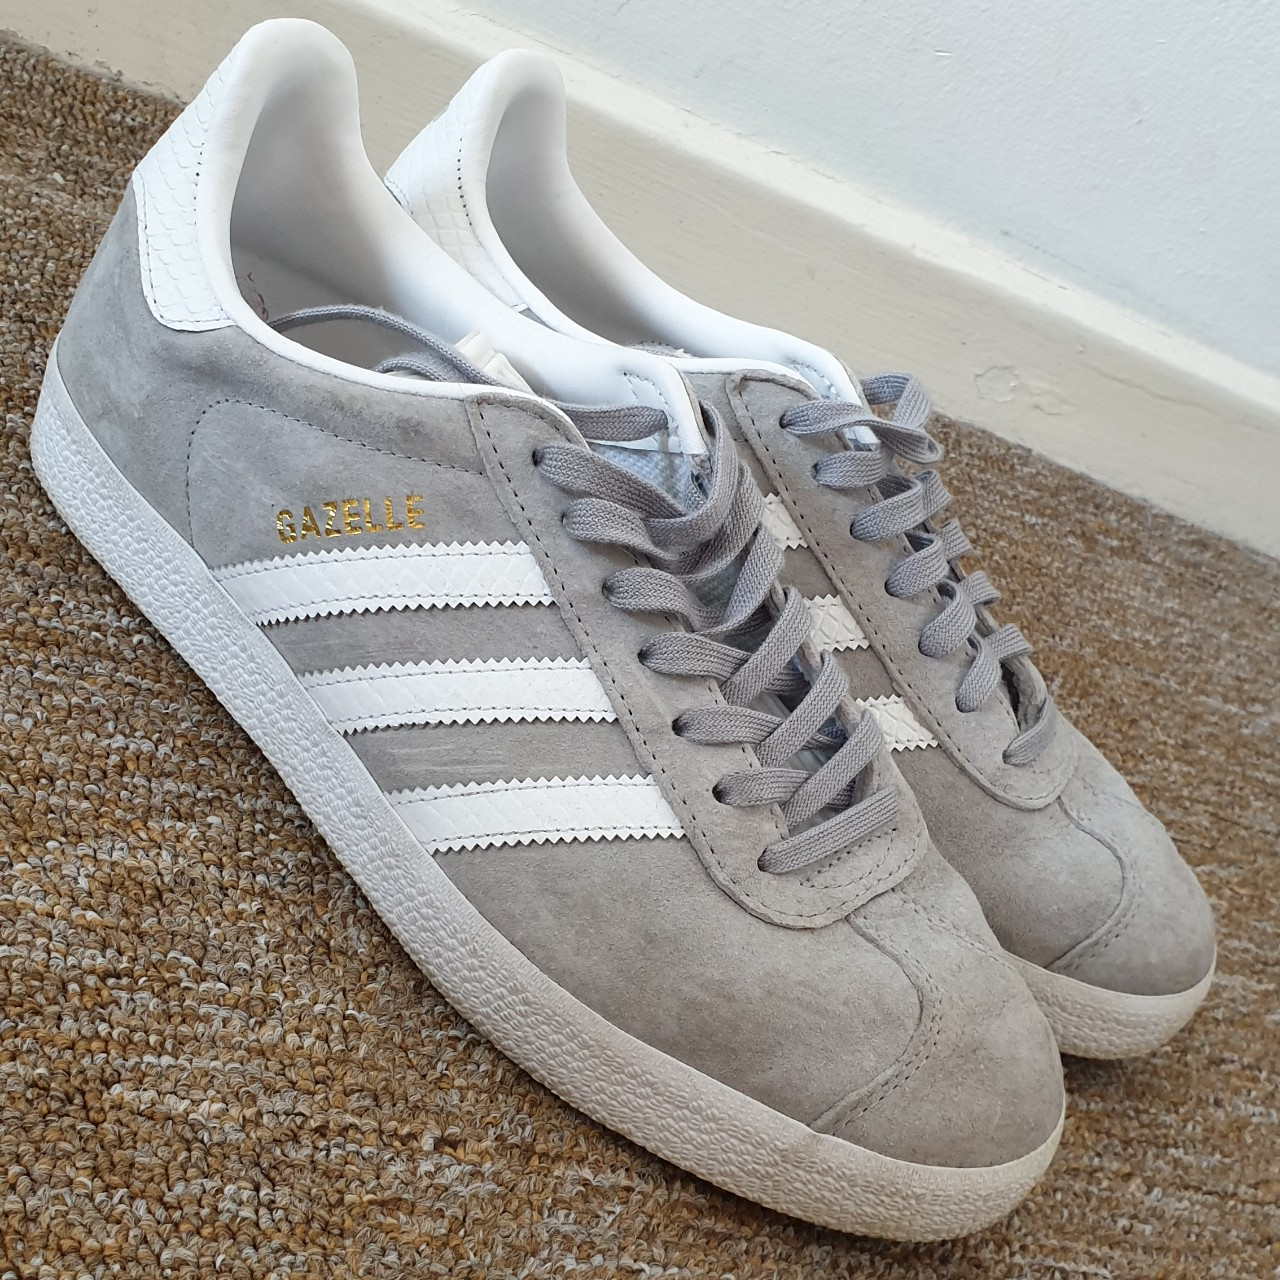 salario pastel Excepcional  Adidas Gazelle trainers womens light grey suede with... - Depop